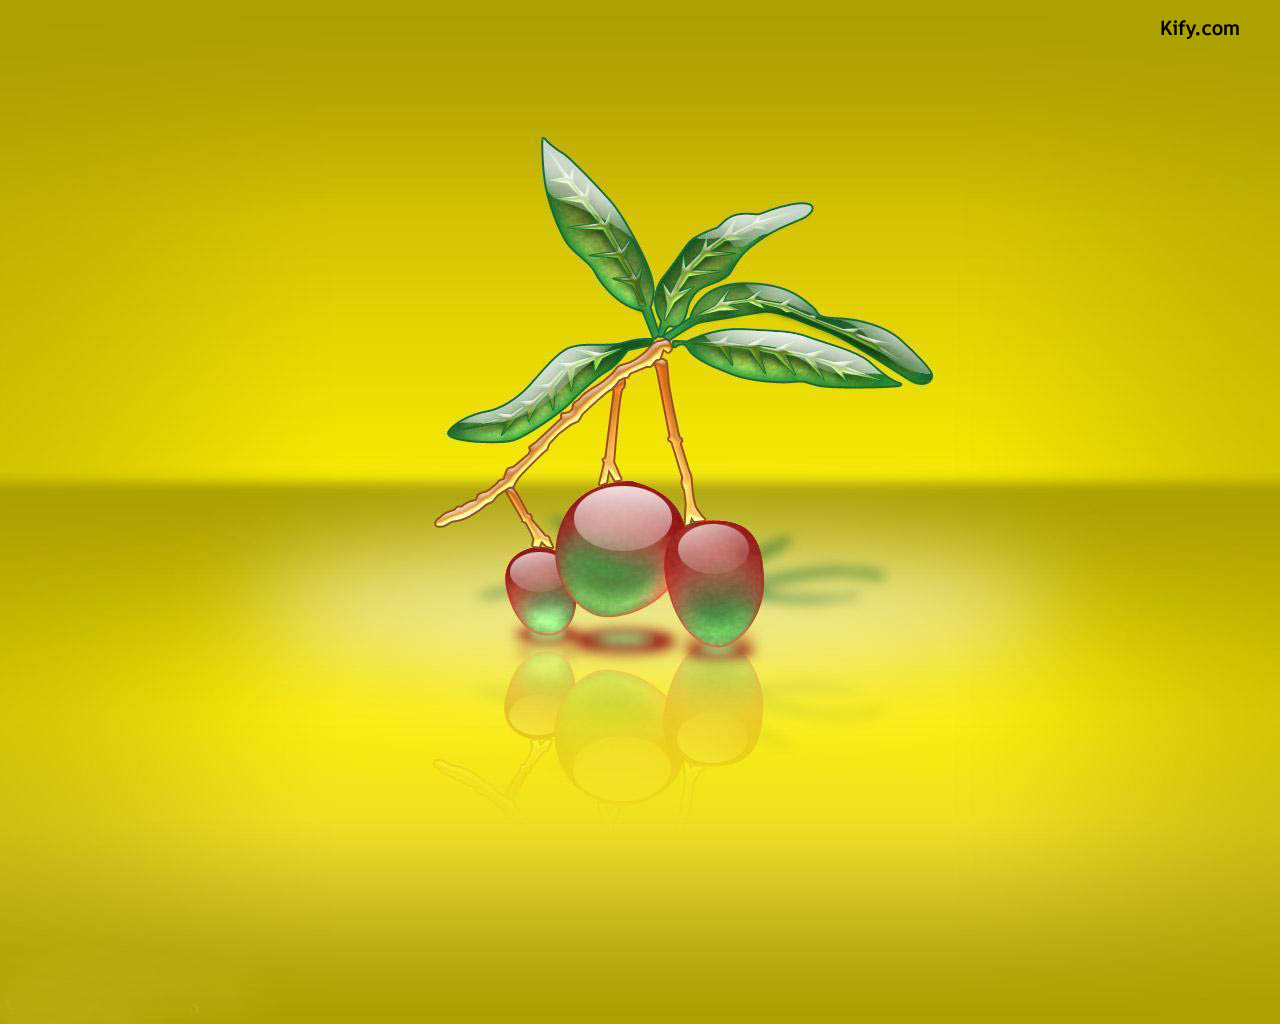 Fruits Wallpapers   Wallpapers for Computers Mobiles 1280x1024